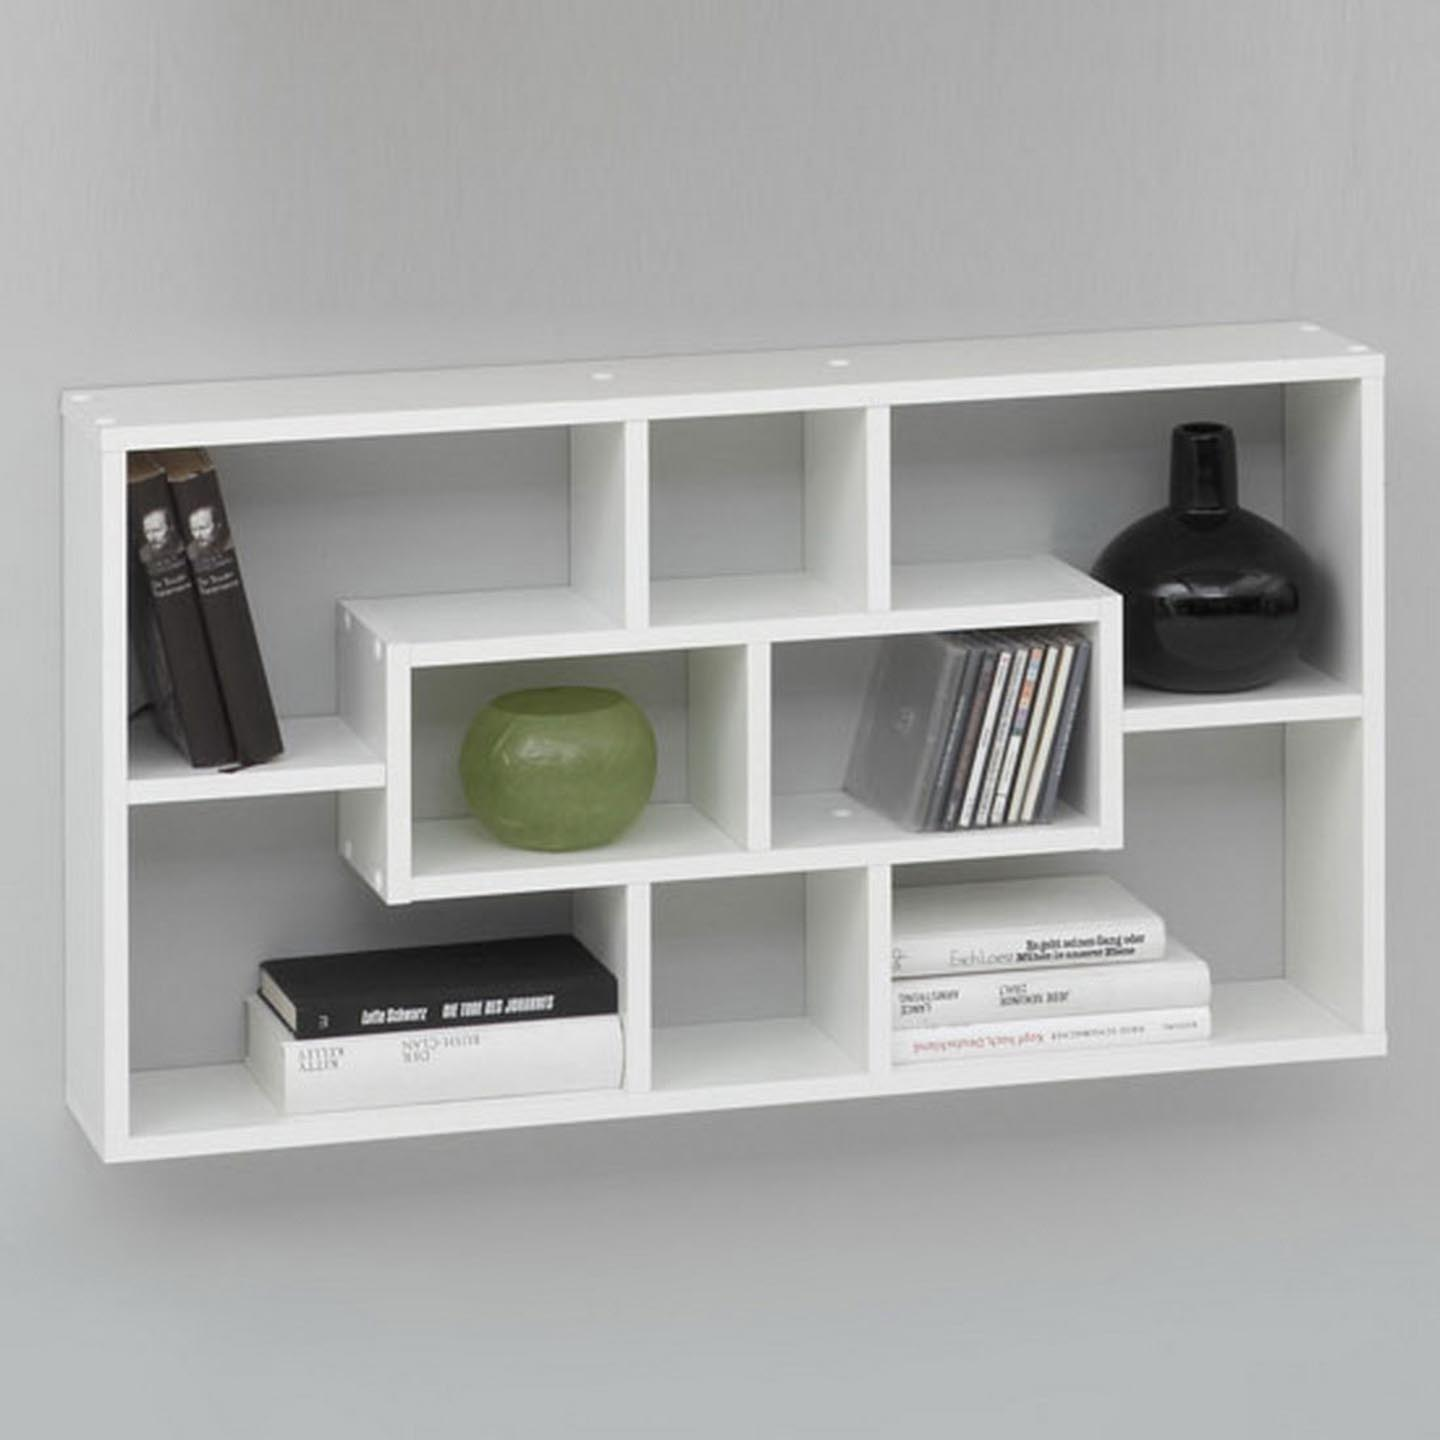 Bookshelves On Wall Decorative Wall Shelves In The Modern Interior Best